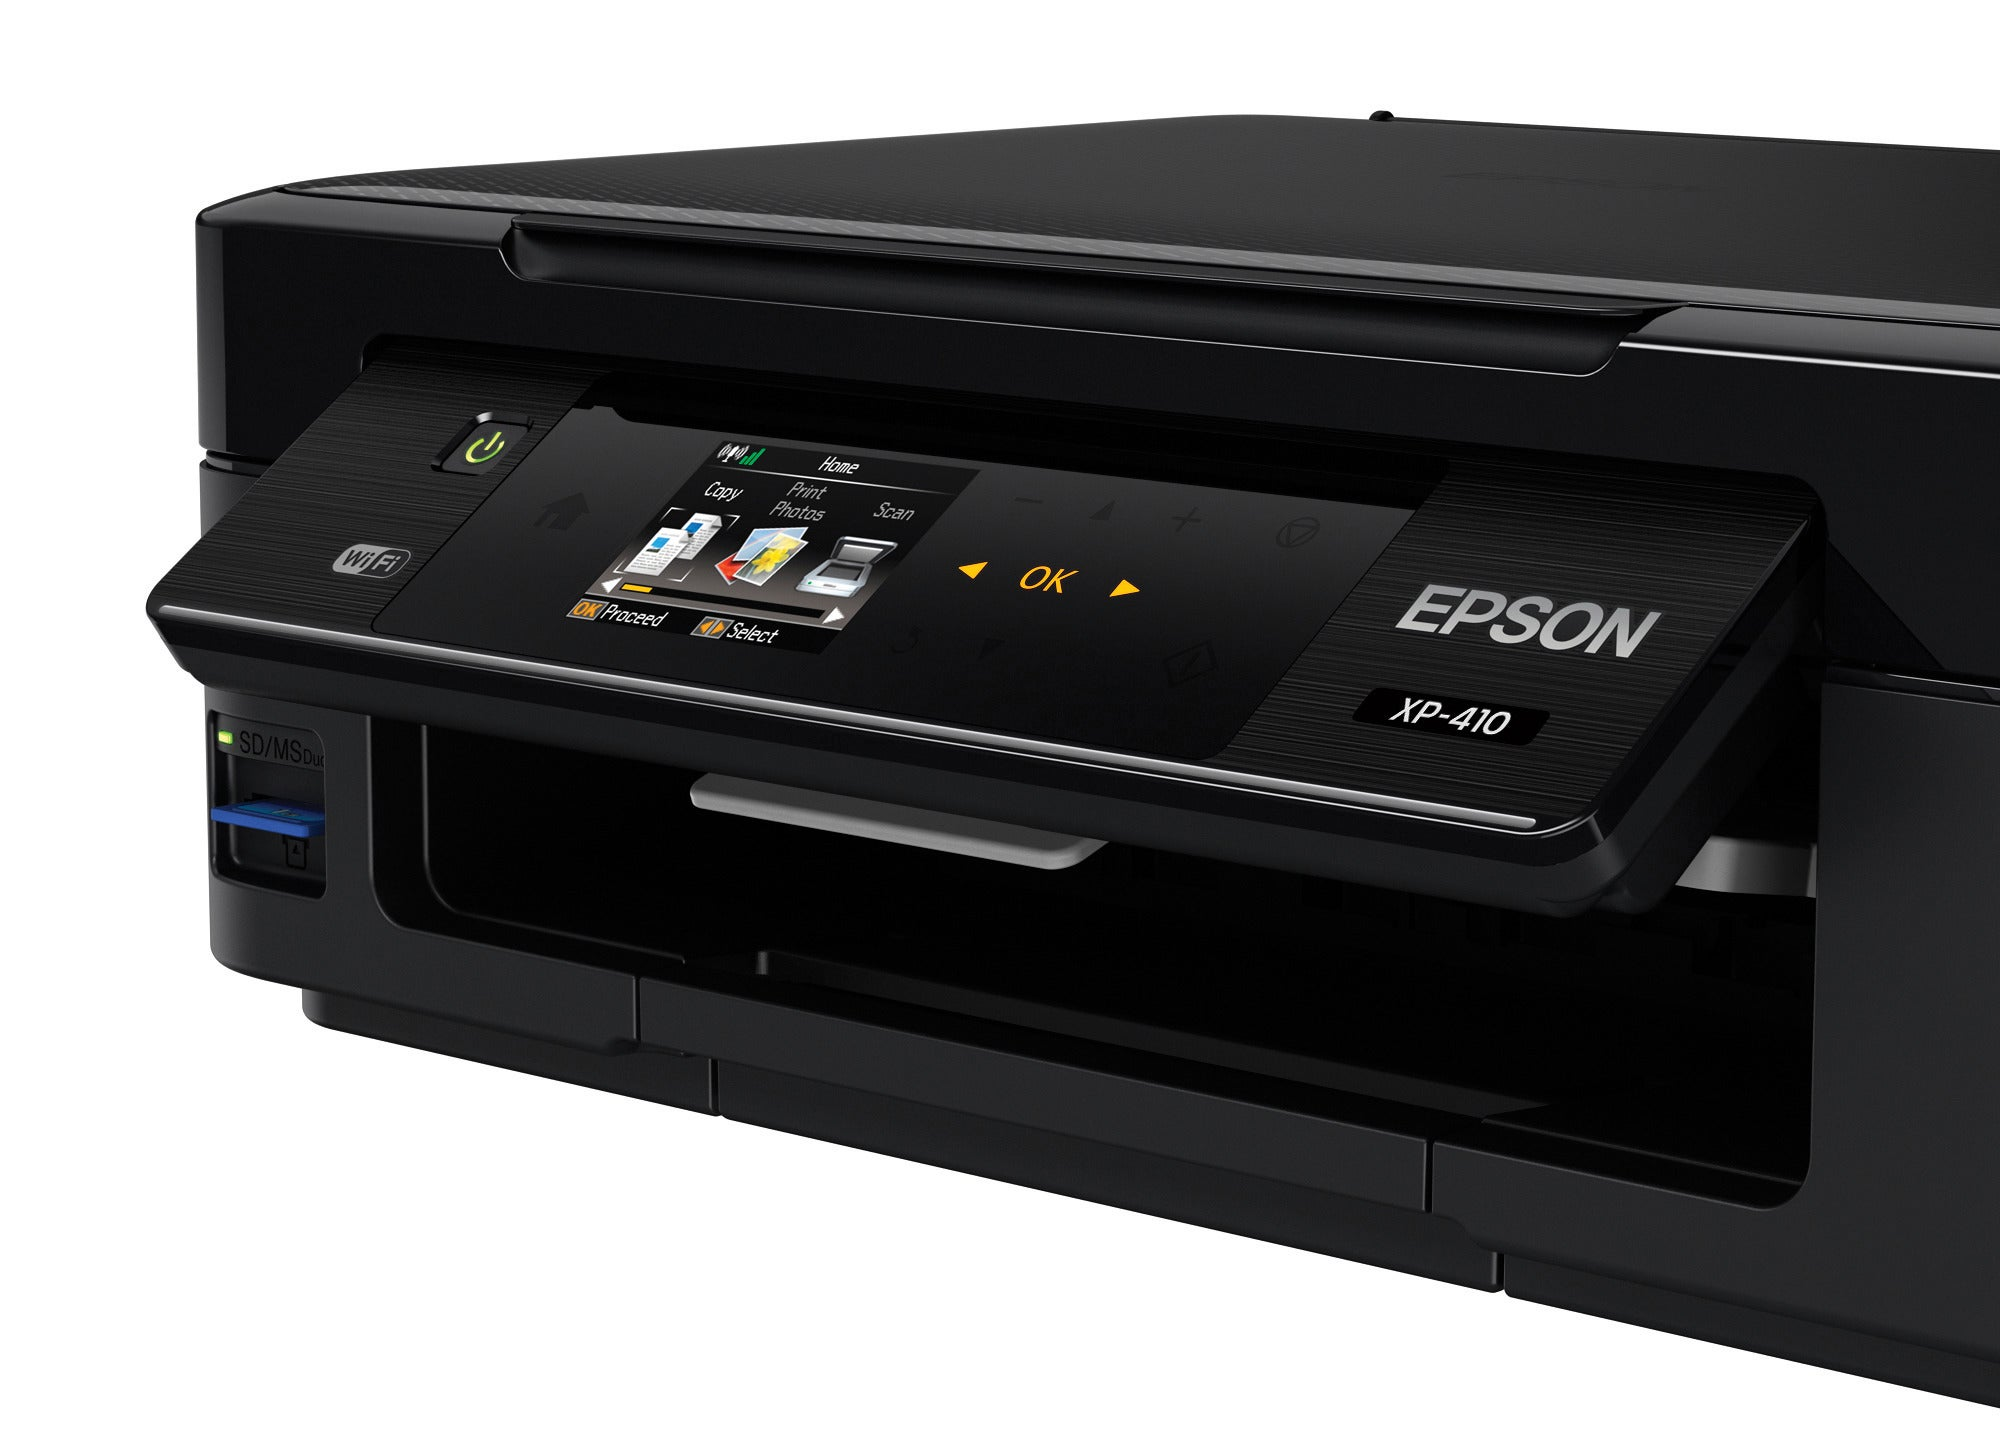 Printer Driver And Epson Xp 410 And Word